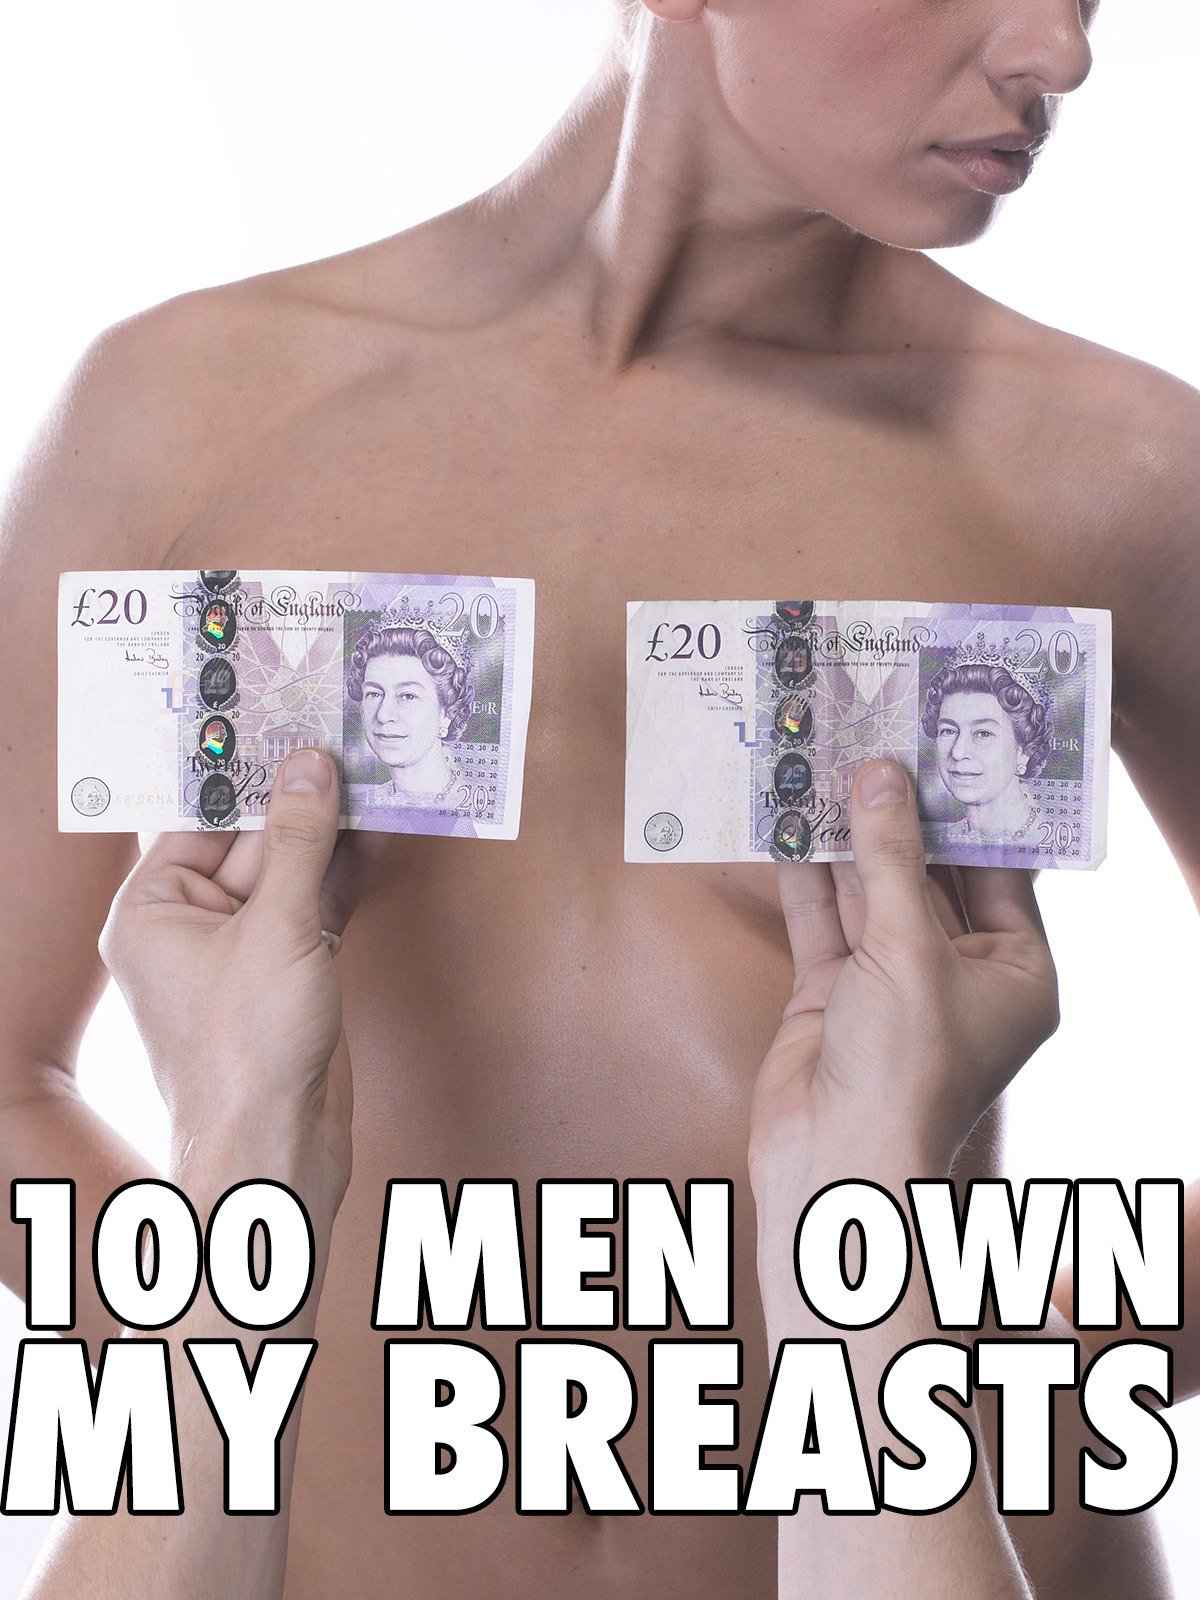 100 Men Own My Breasts on Amazon Prime Video UK